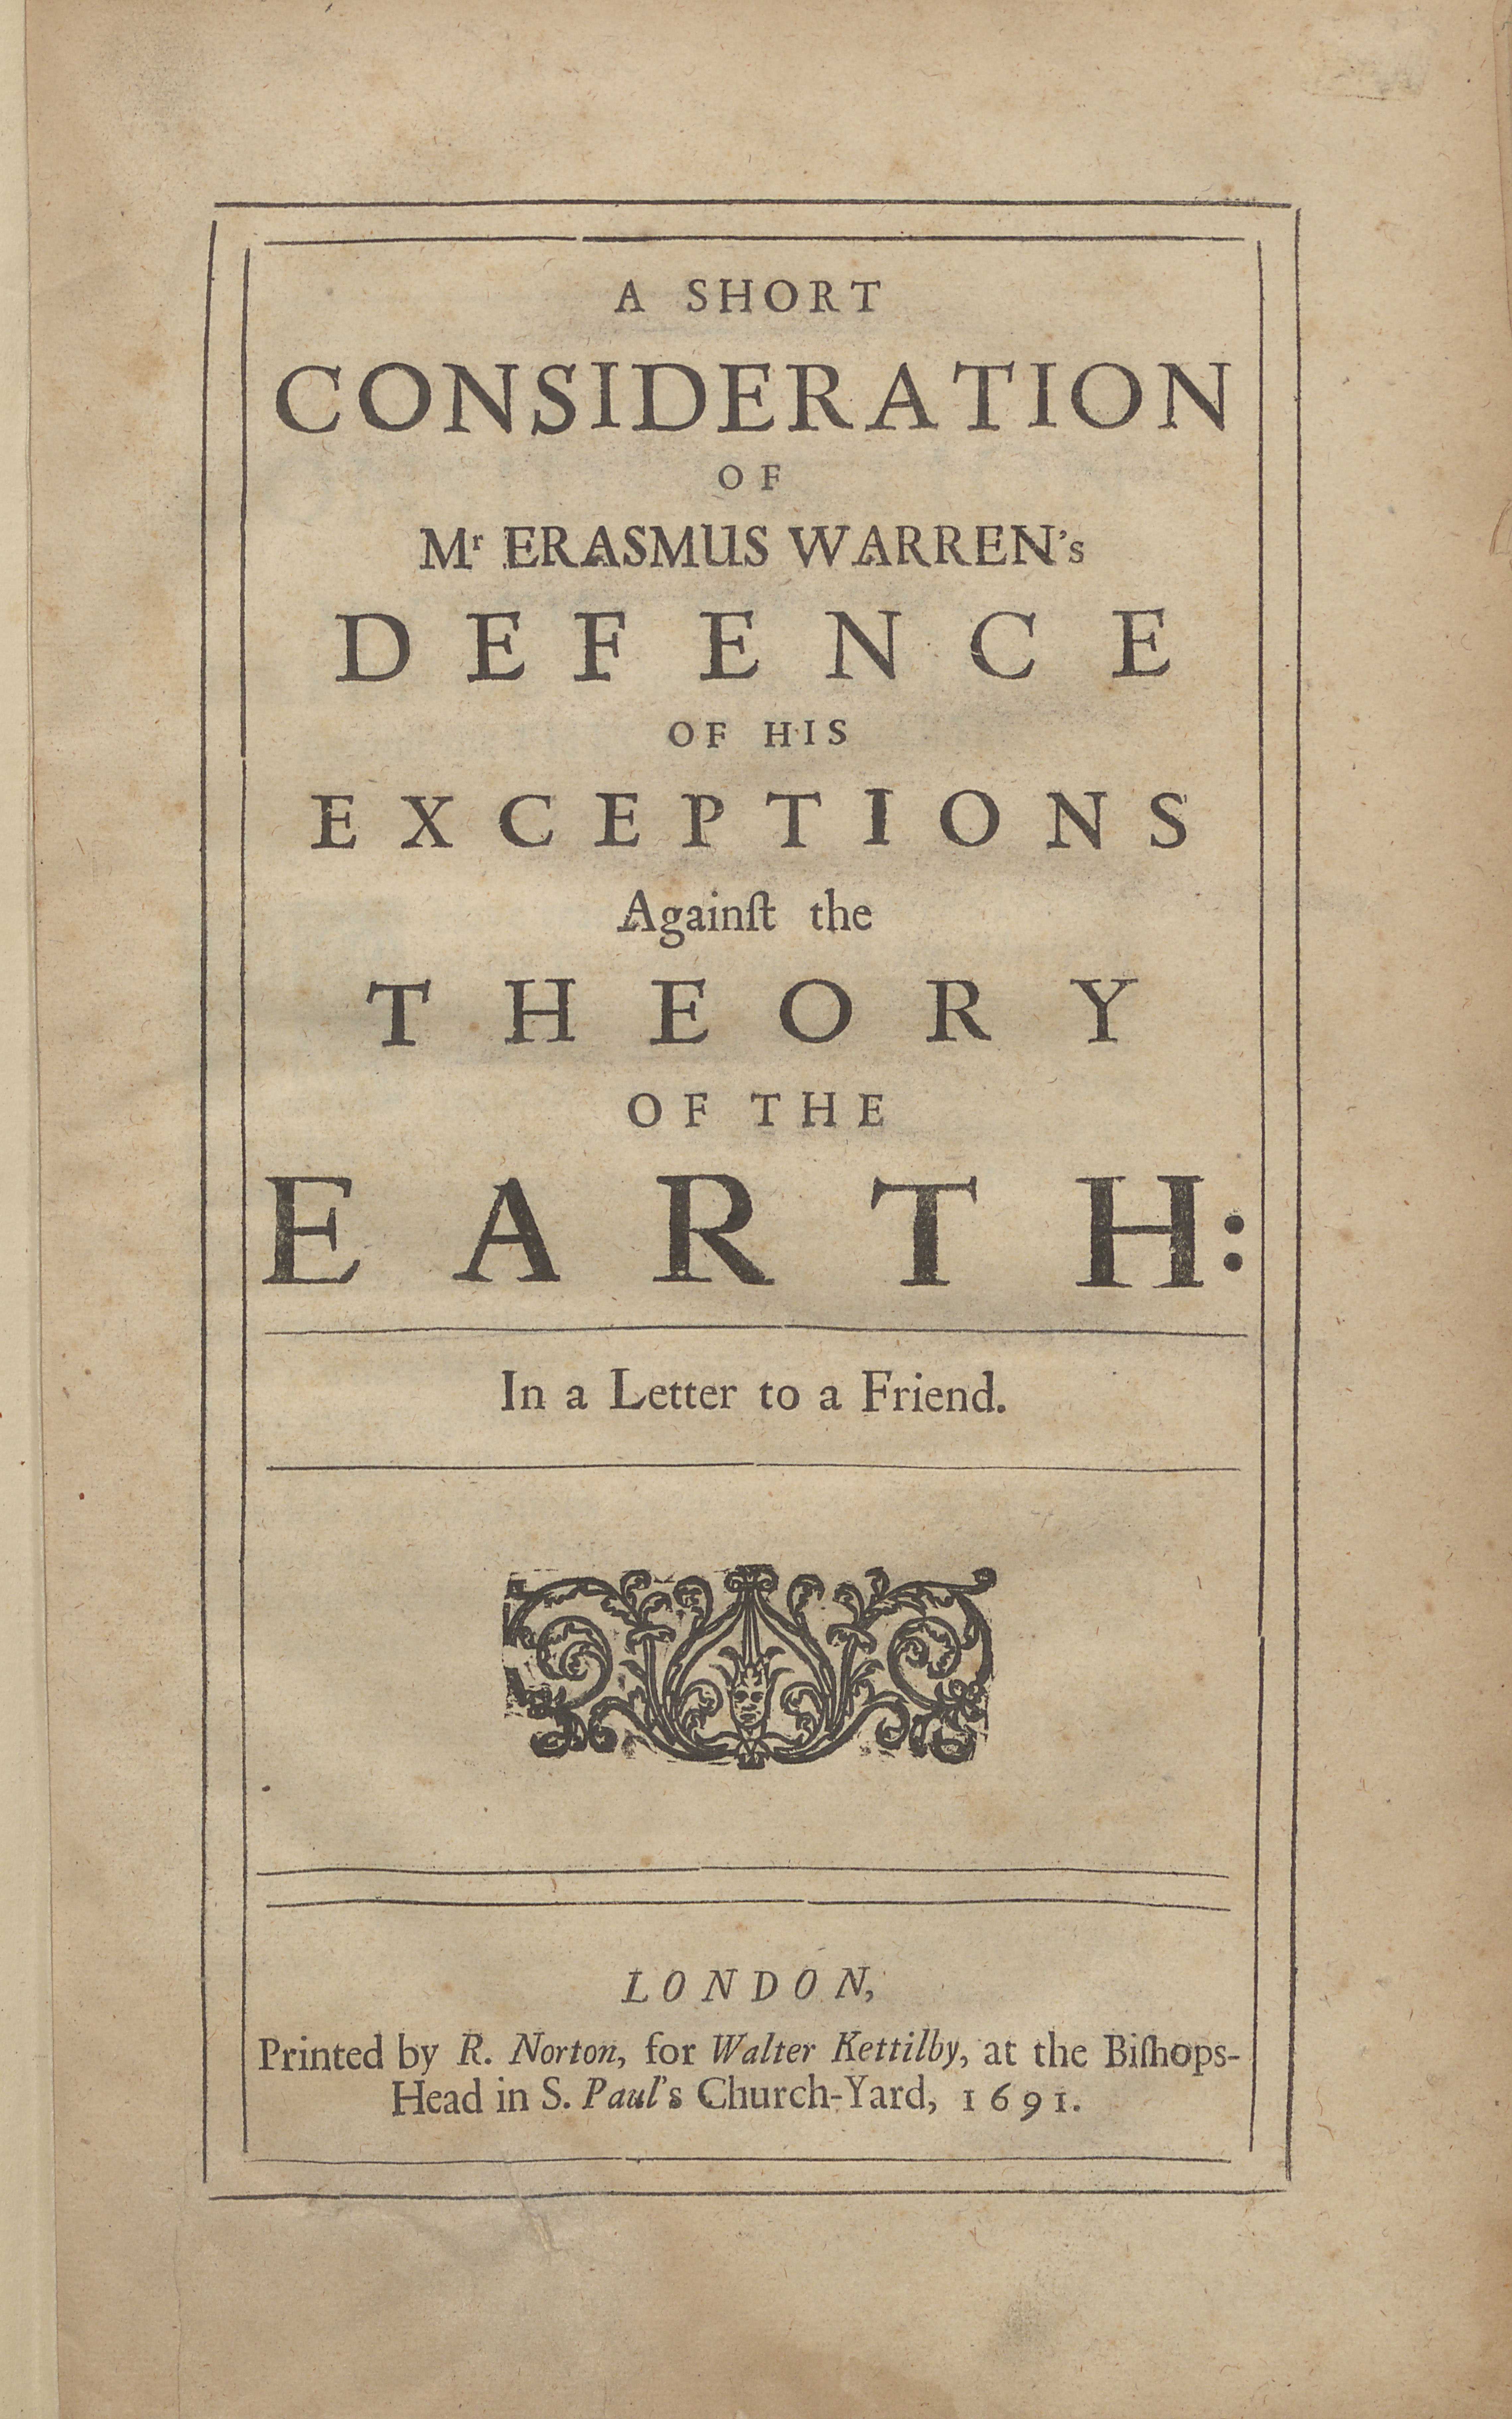 Thomas Burnet's A Short Consideration of Mr. Erasmus Warren's Defence of His Exceptions against the Theory of The Earth, frontispiece